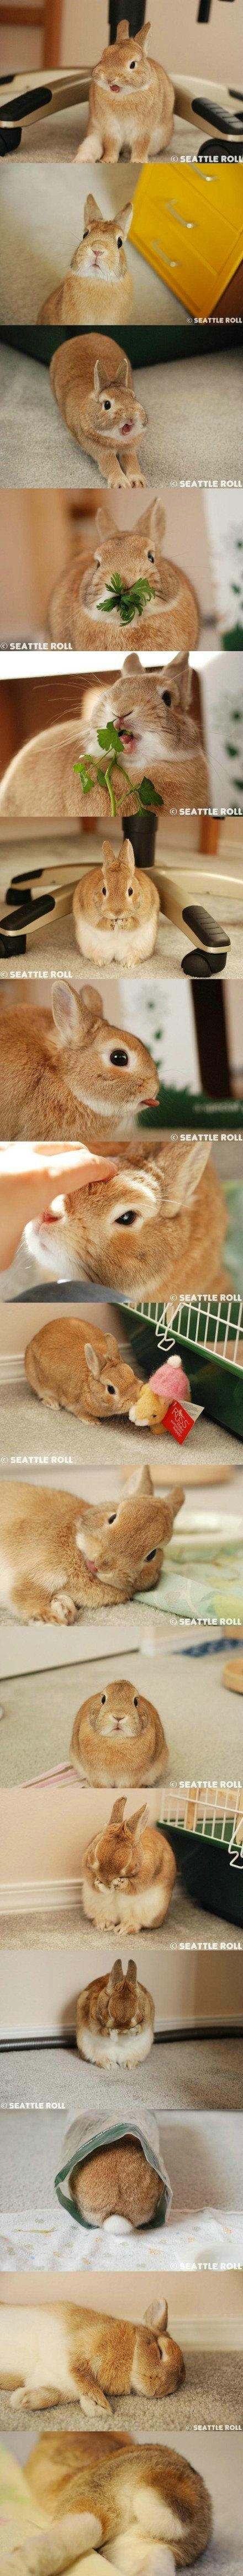 great series of pics of a bunny and all the wonderful things I love about them...